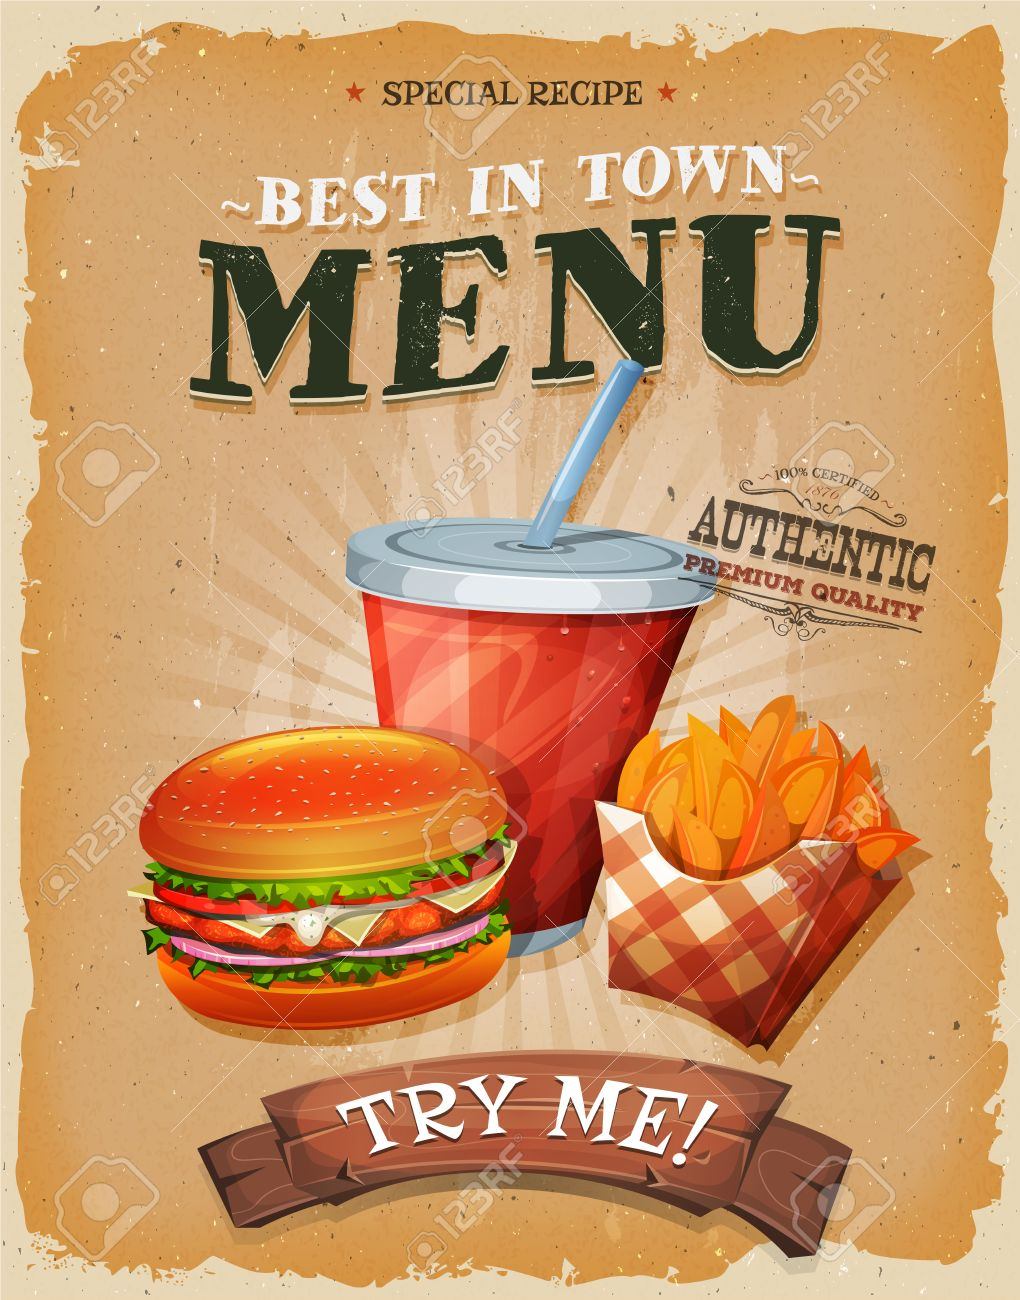 Illustration of a design vintage and grunge textured poster, with burger, cup of soda to drink, and french fries icon, for fast food snack and takeaway menu - 48776370